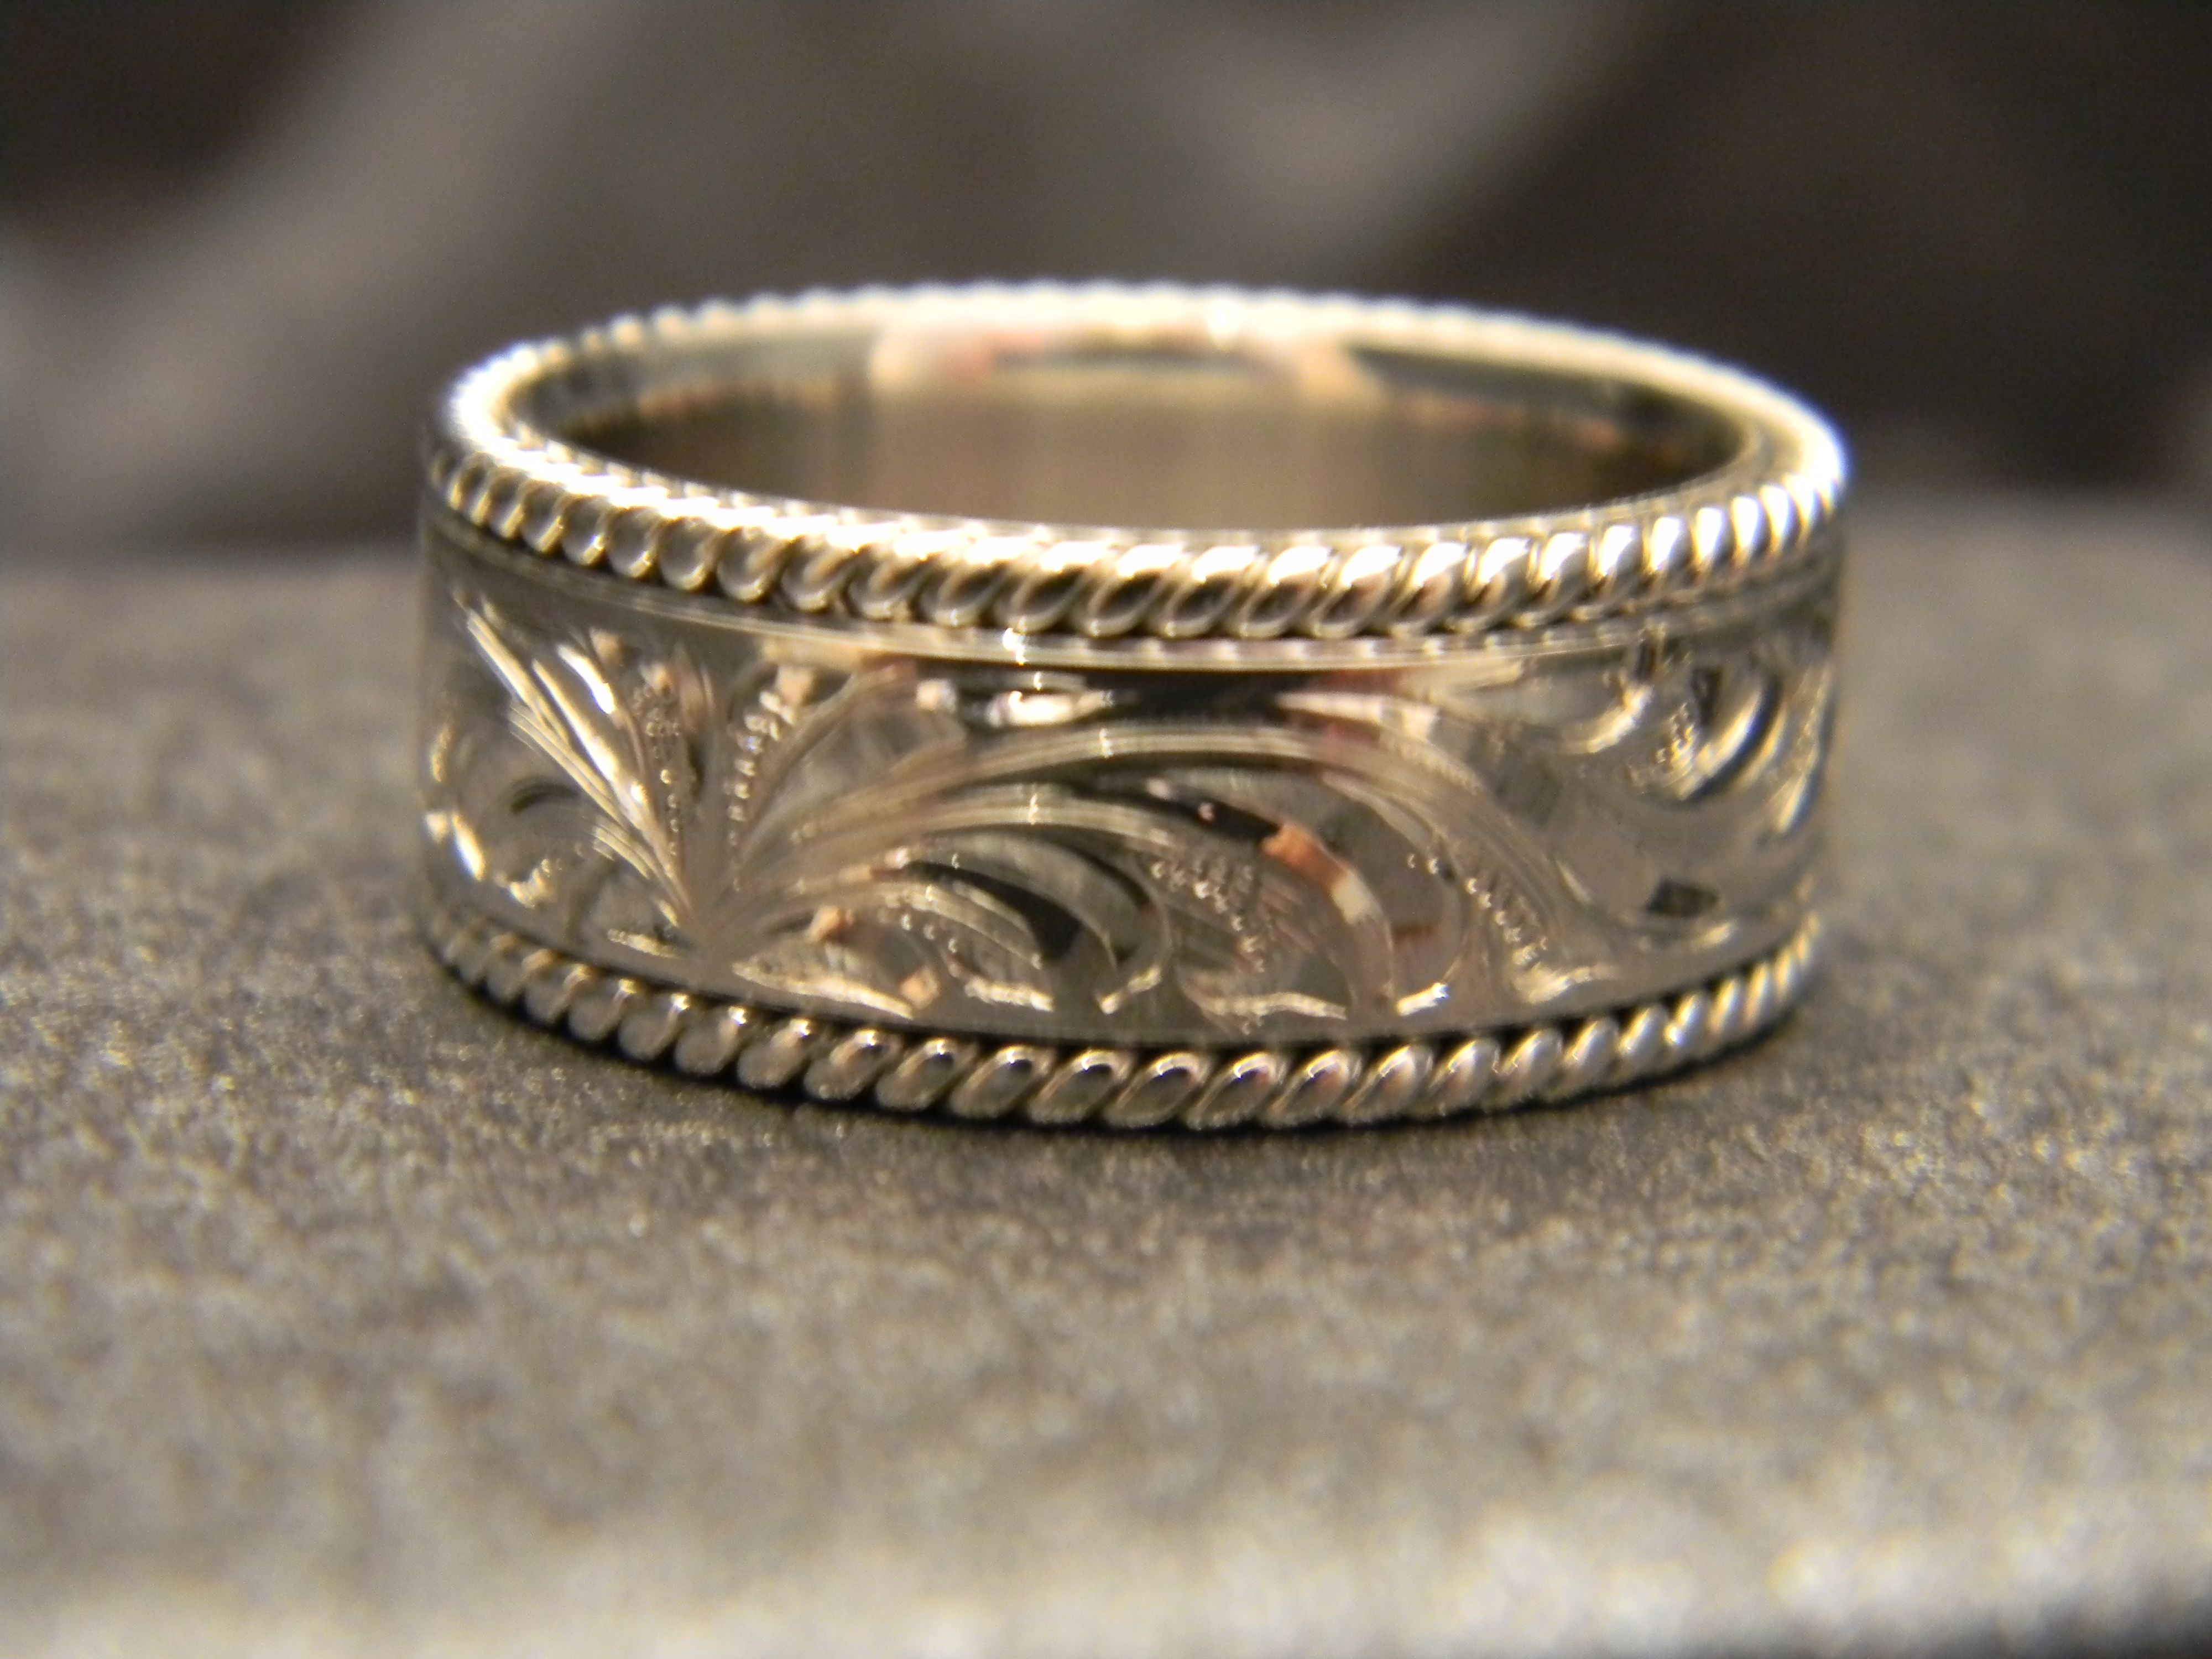 9mm White Gold Engraved Flat Rope Ring with Bright Cut Engraving